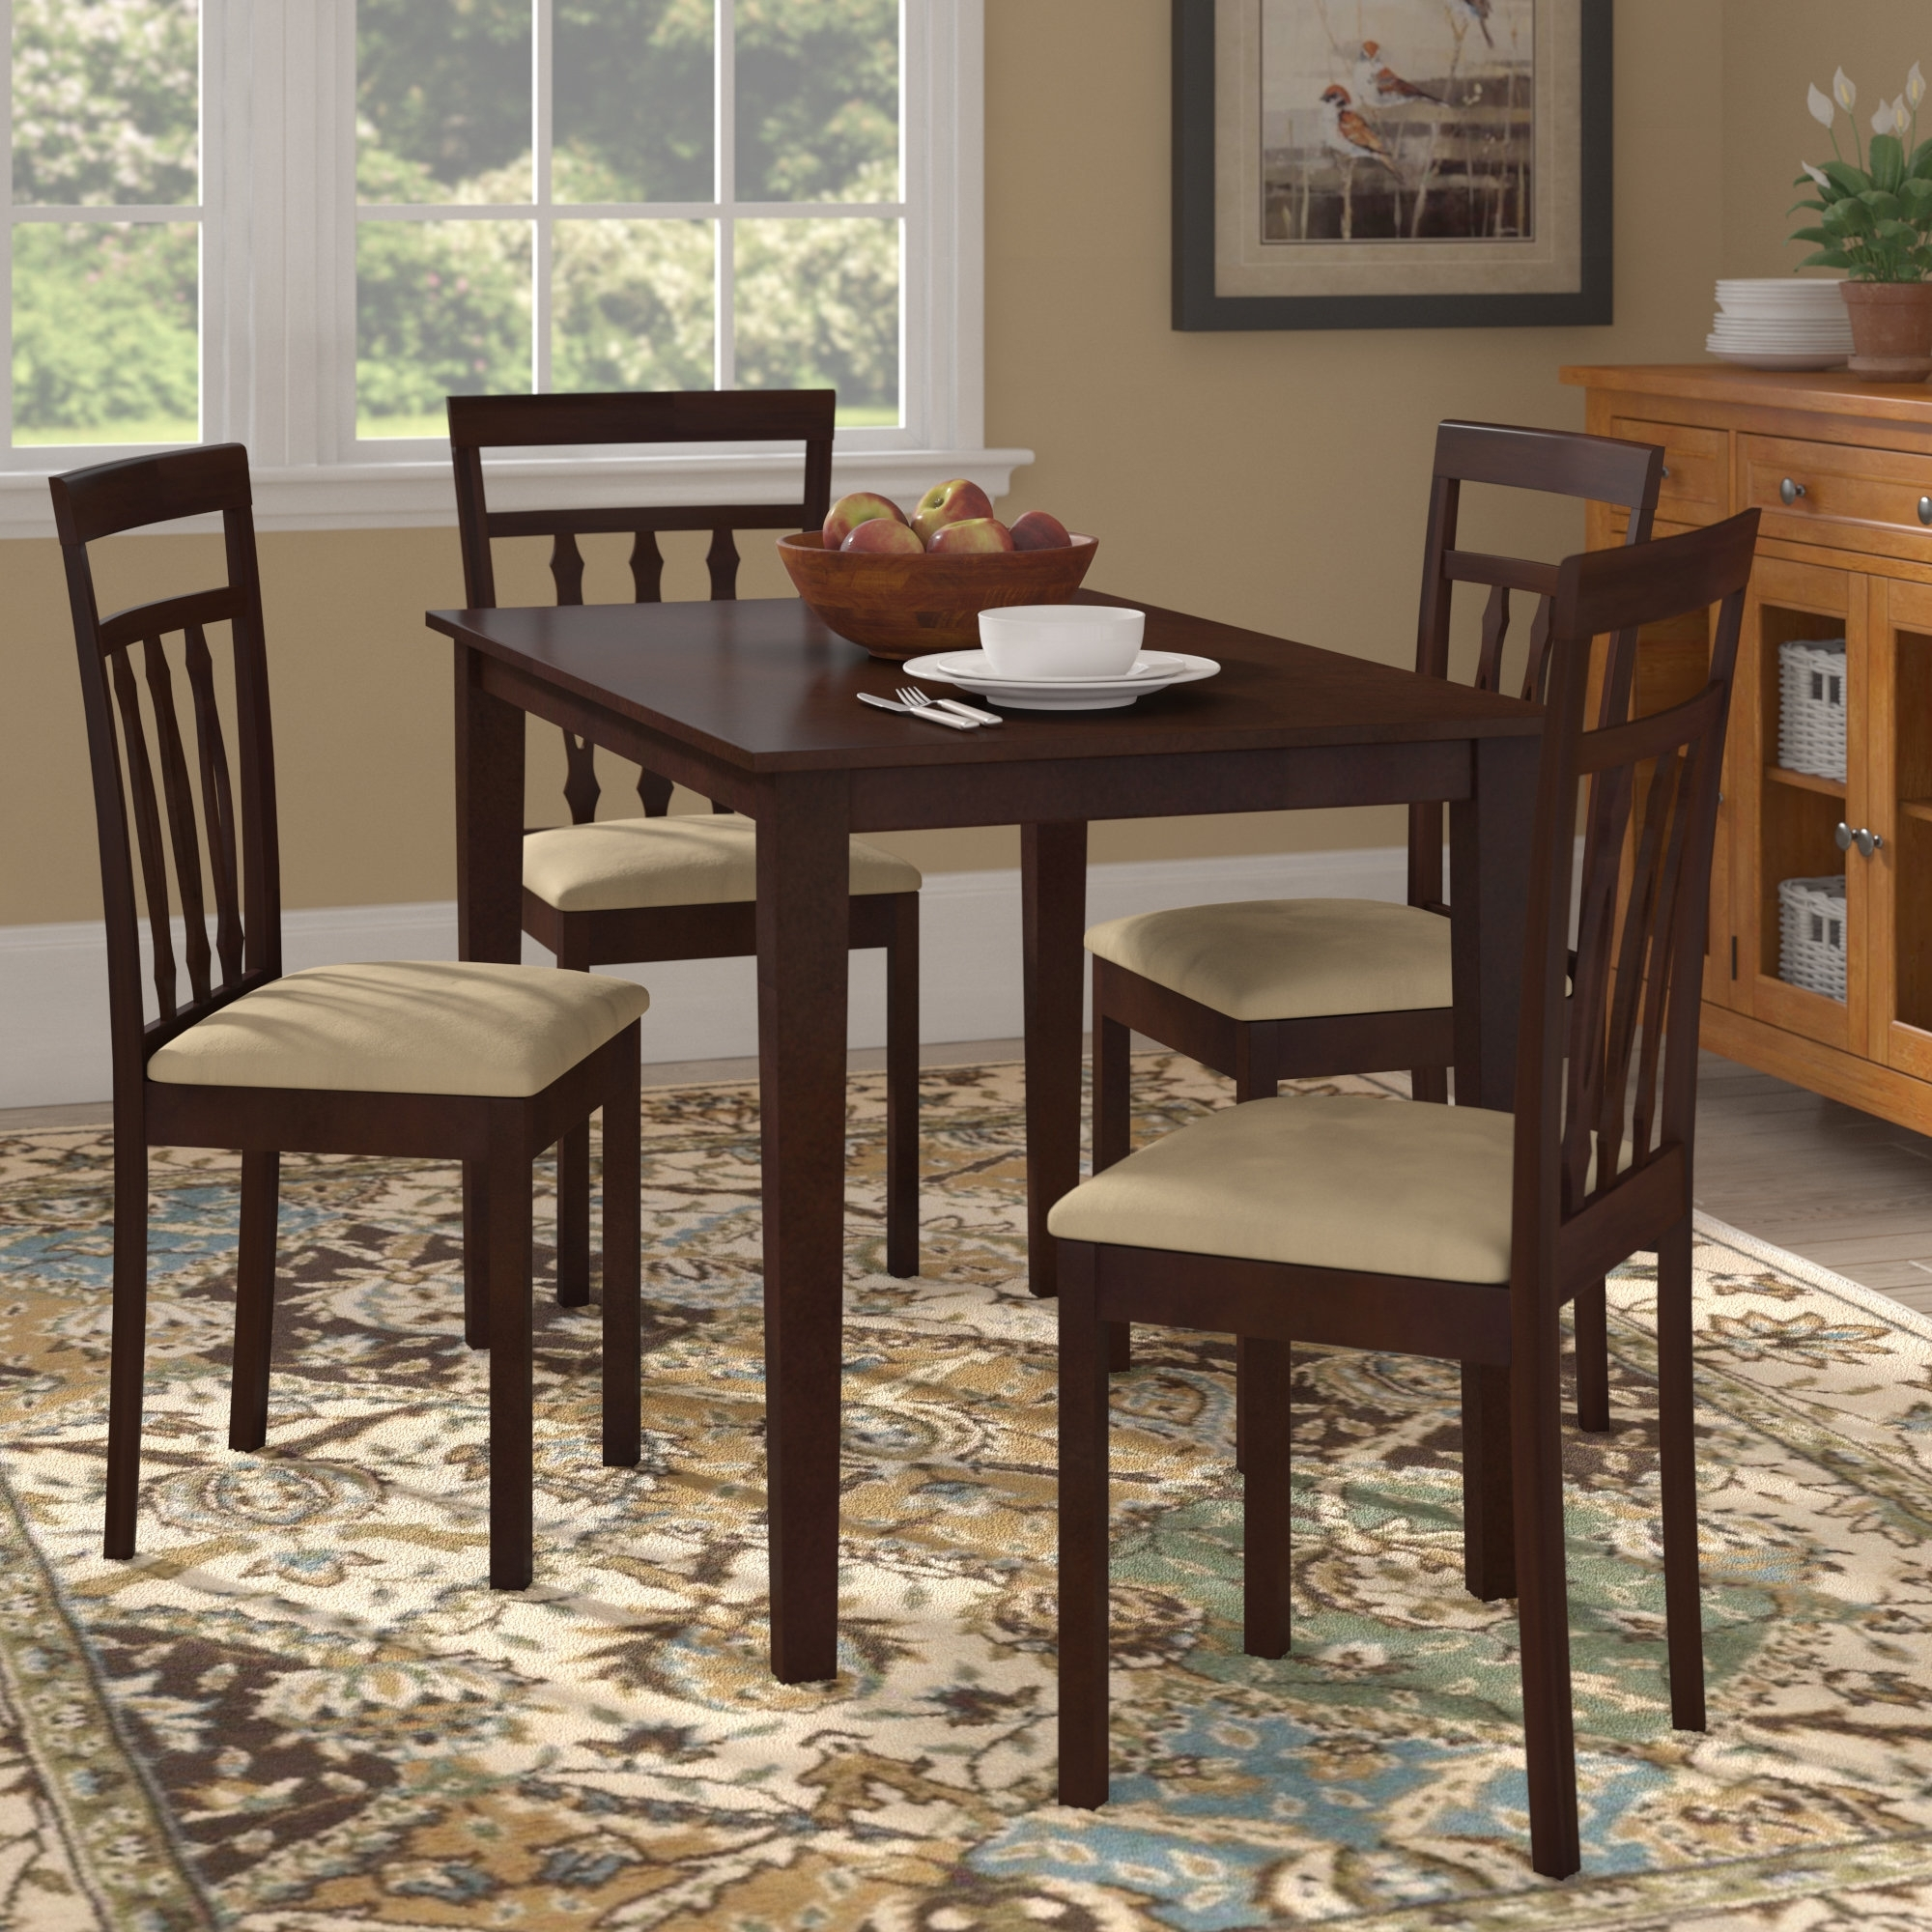 Hyland 5 Piece Counter Sets With Bench Intended For Popular August Grove Vivien 5 Piece Dining Set & Reviews (View 8 of 25)